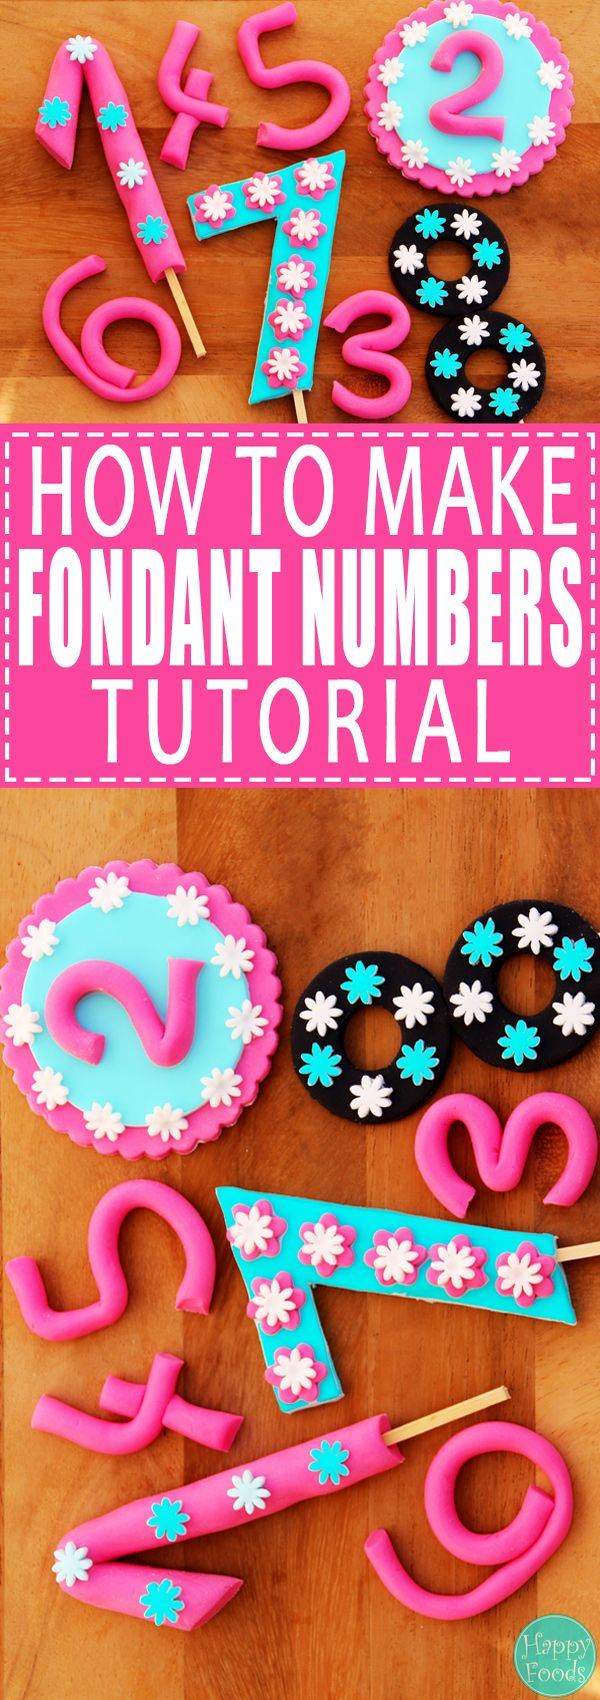 How to Make Fondant Numbers for Birthday Cake - Easy cake decorating tutorial! Learn how to decorate your cake! | happyfoodstube.com